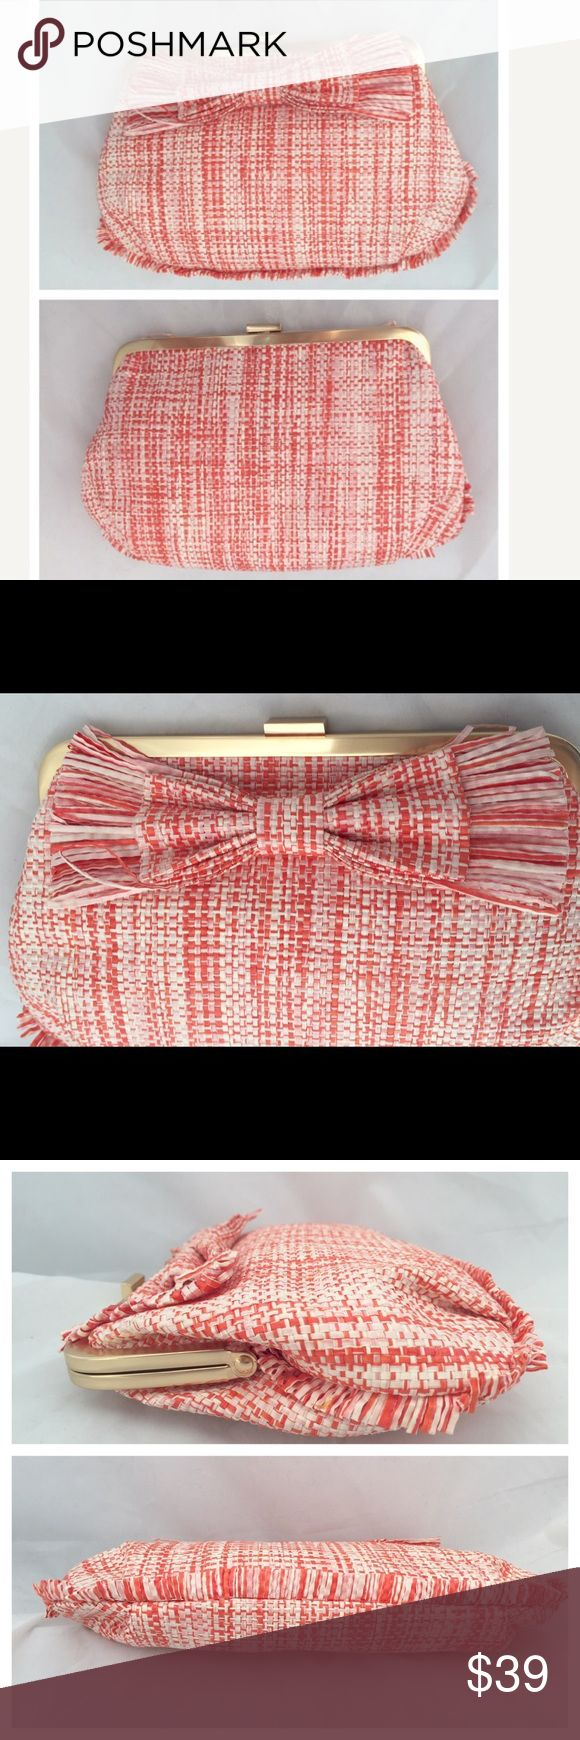 """J. Crea raffia orange clutch bag J. Crew raffia orange clutch bag with oversized bow and tiny fringes all around the bottom half. Gold tone metal opening. New with original tag. Canvas lined. Widest part is about 10"""" and height is about 6"""". J. Crew Bags Clutches & Wristlets"""